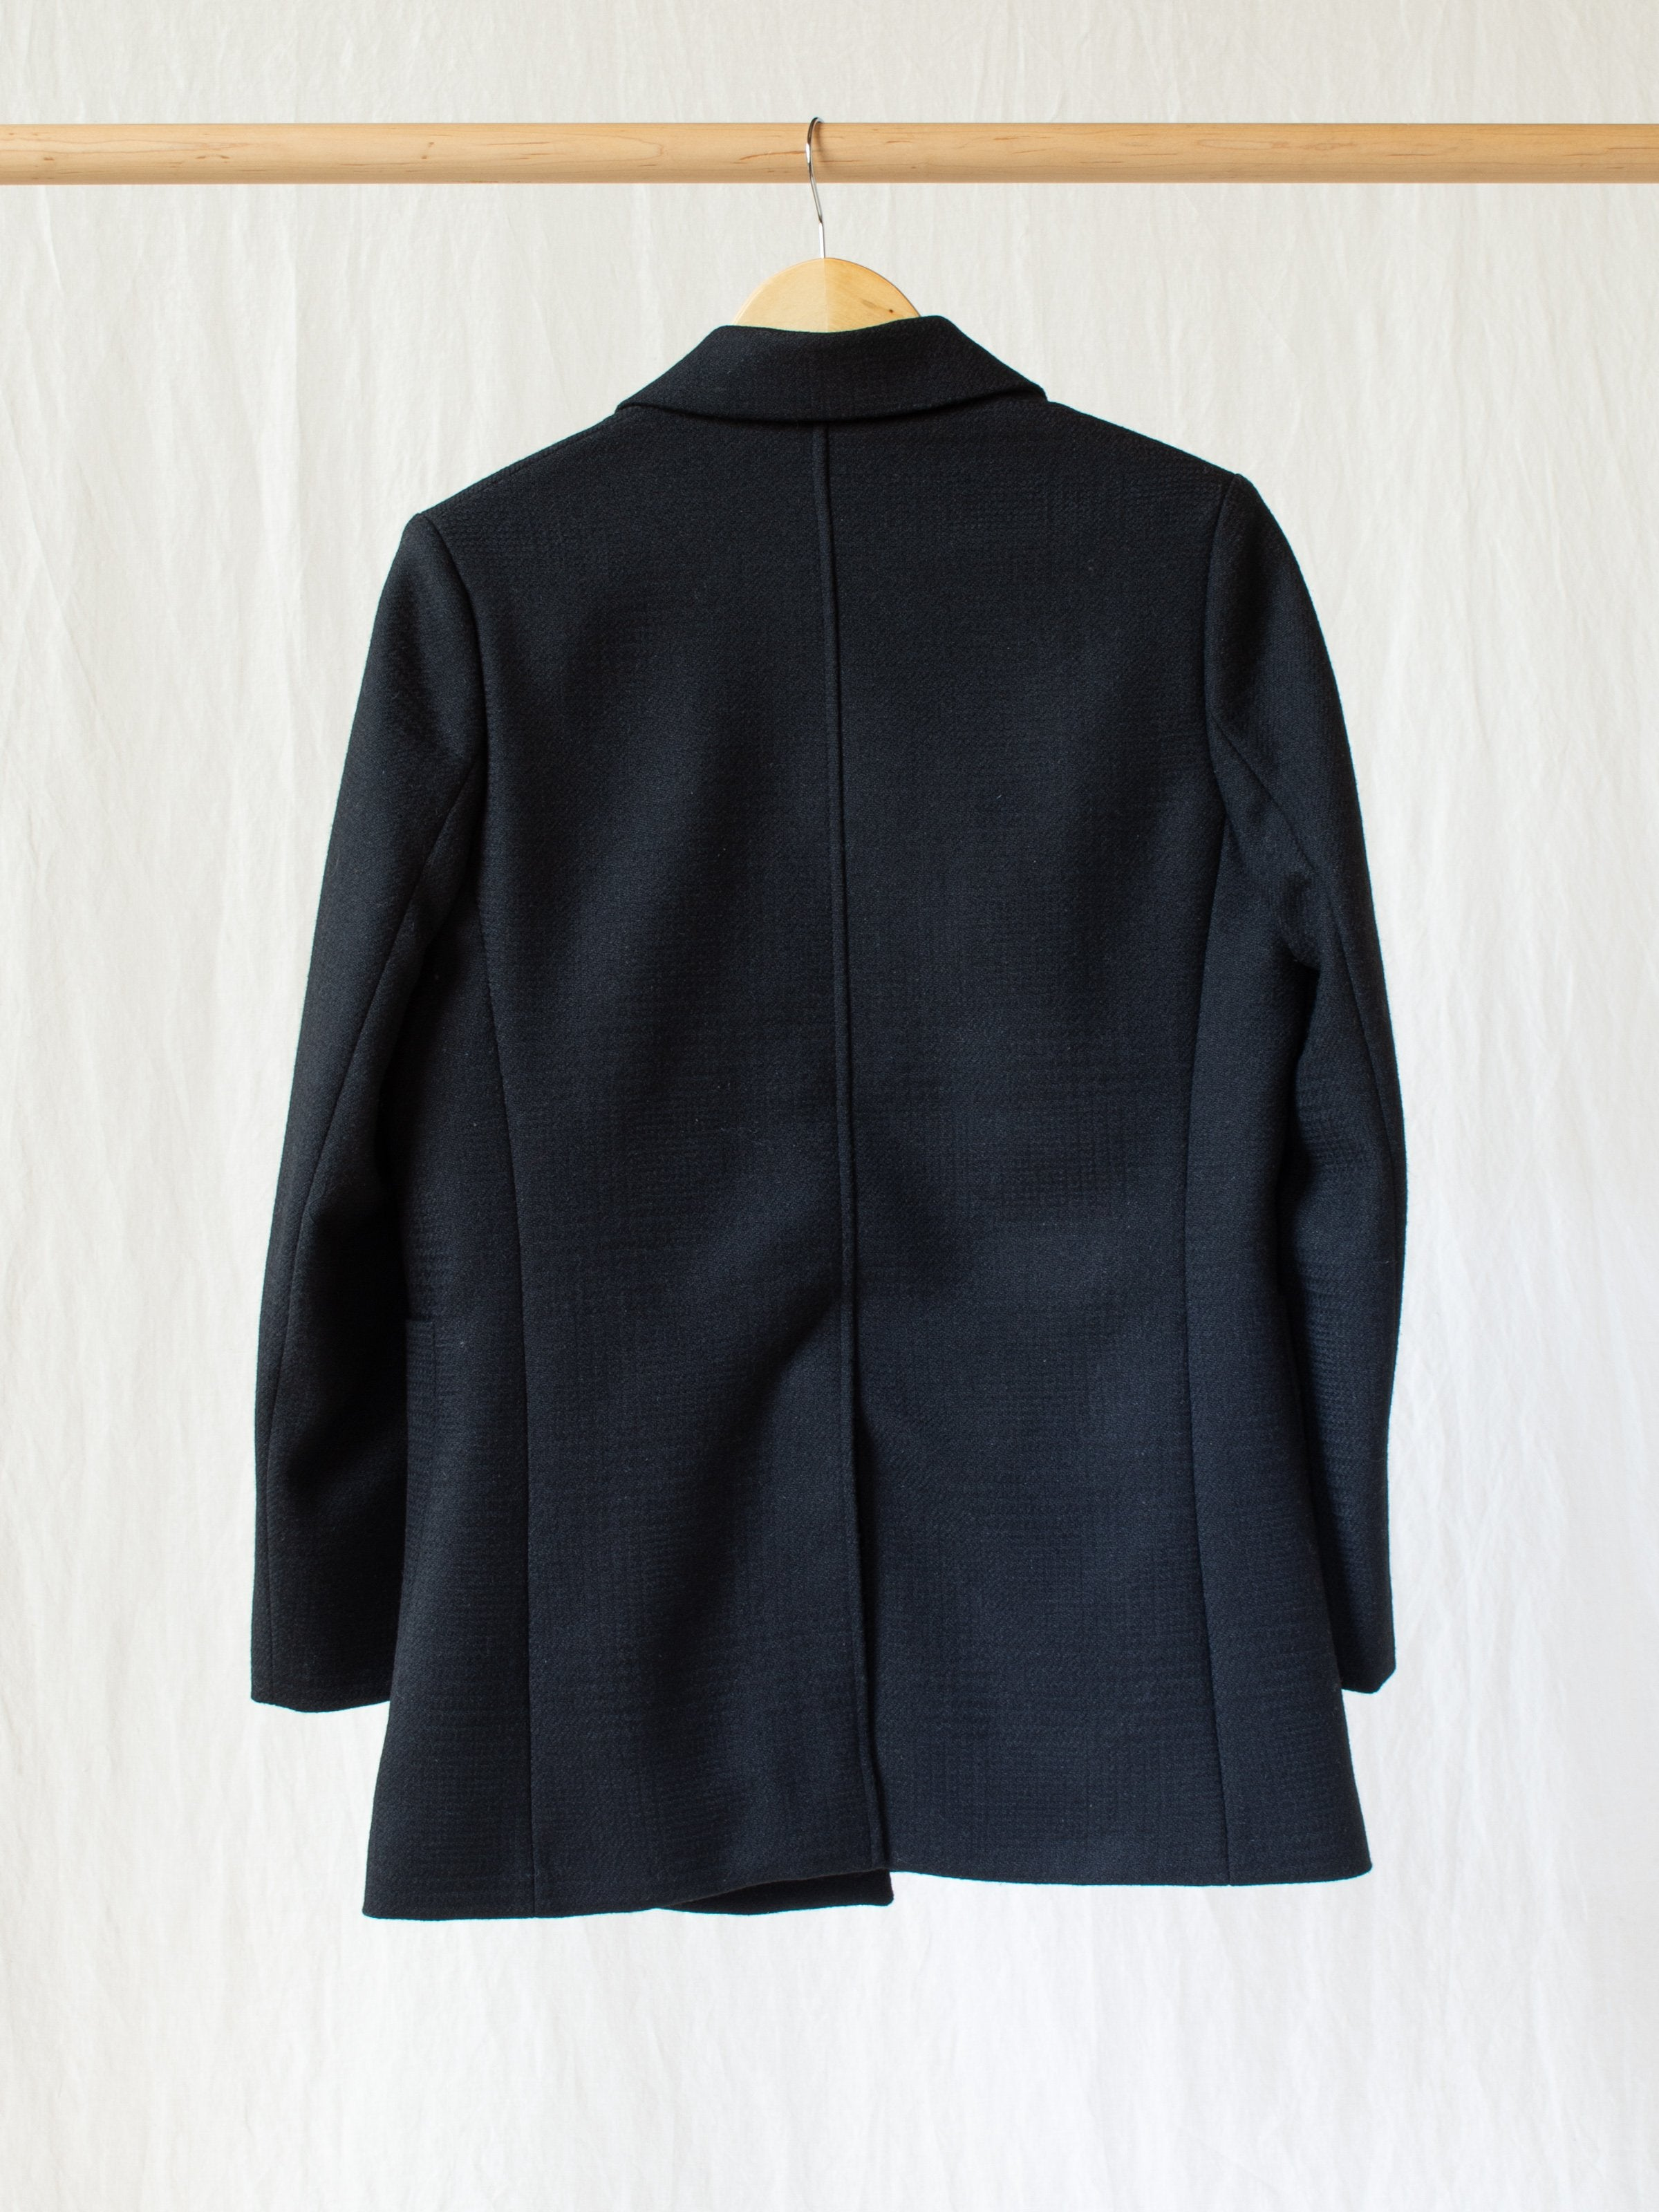 Namu Shop - Studio Nicholson Acre Wool Blazer